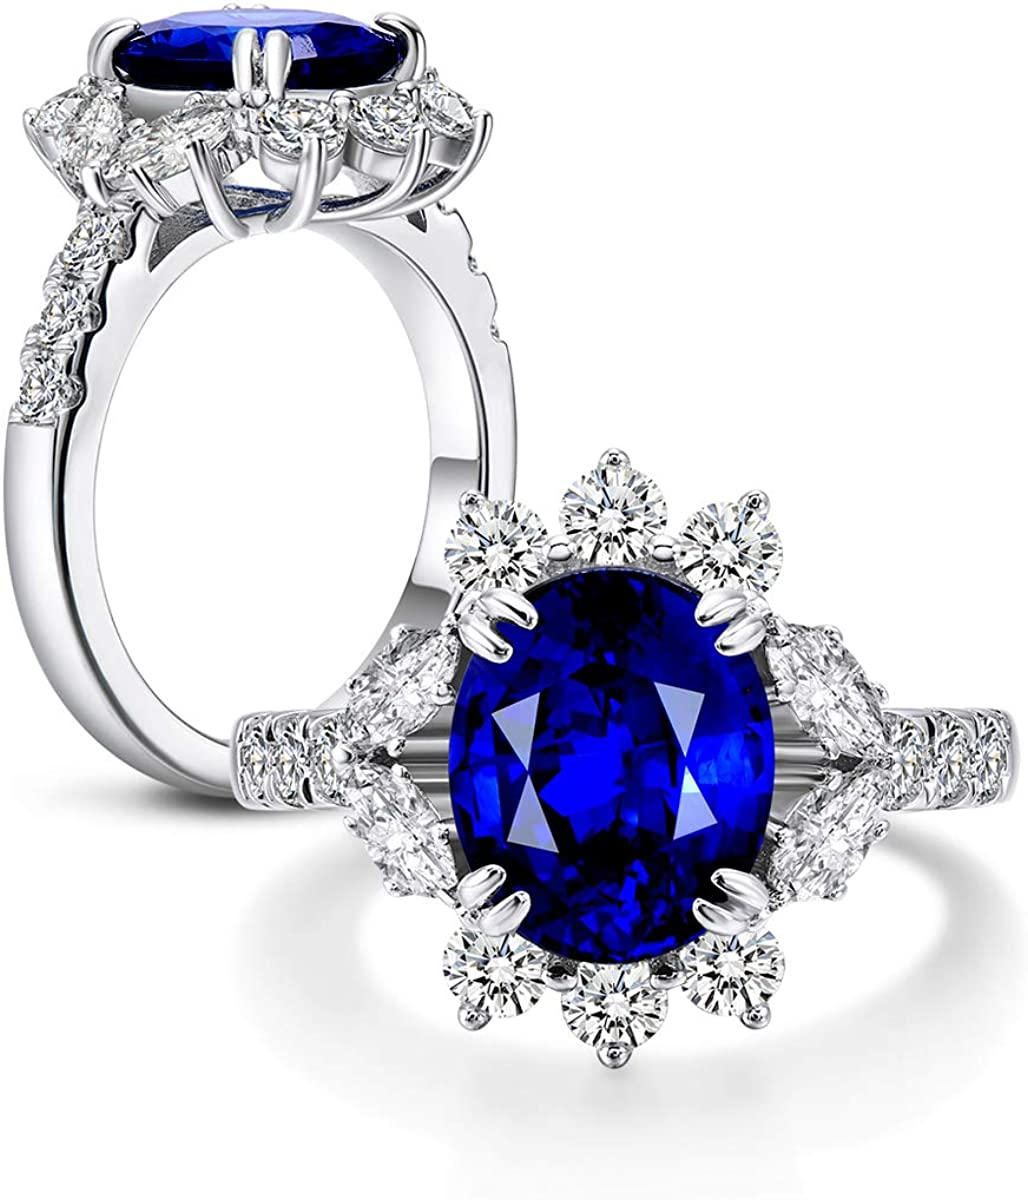 AINUOSHI 4ct Oval Cut Created Blue Sapphire Cubic Zirconia Rhodium Plated Wedding Engagement Ring 925 Sterling Silver